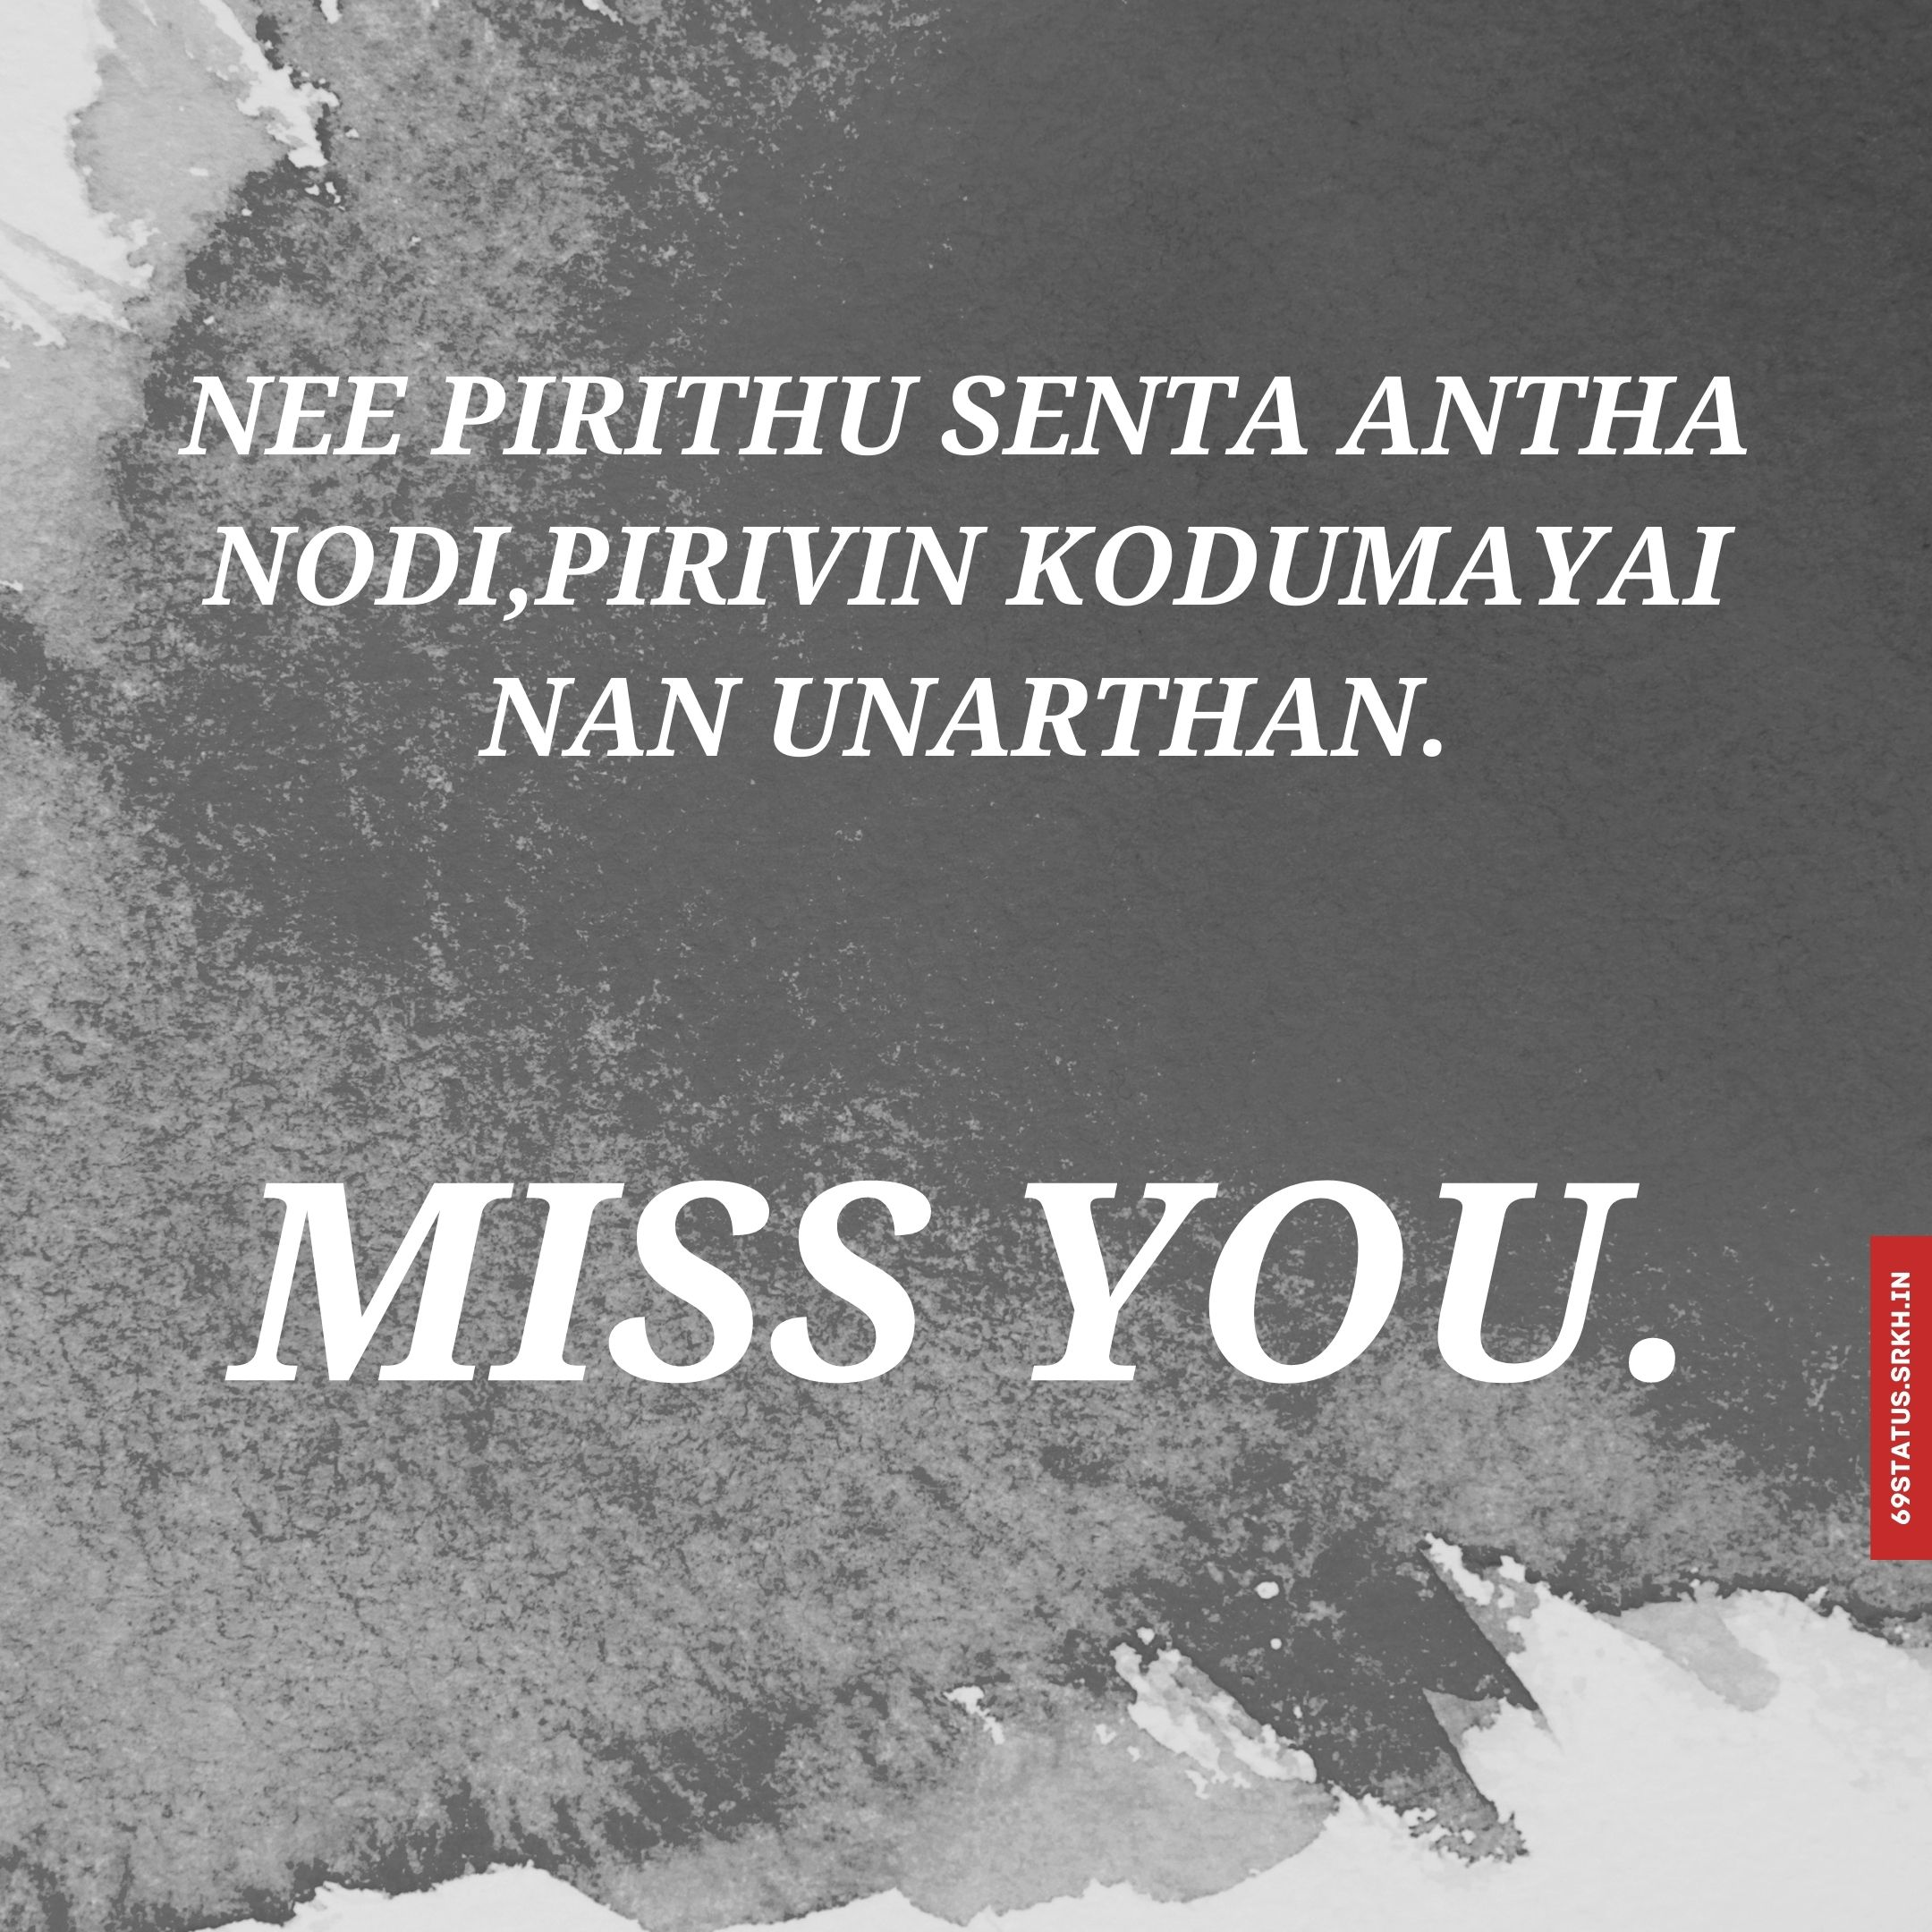 Miss you images with quotes in tamil full HD free download.